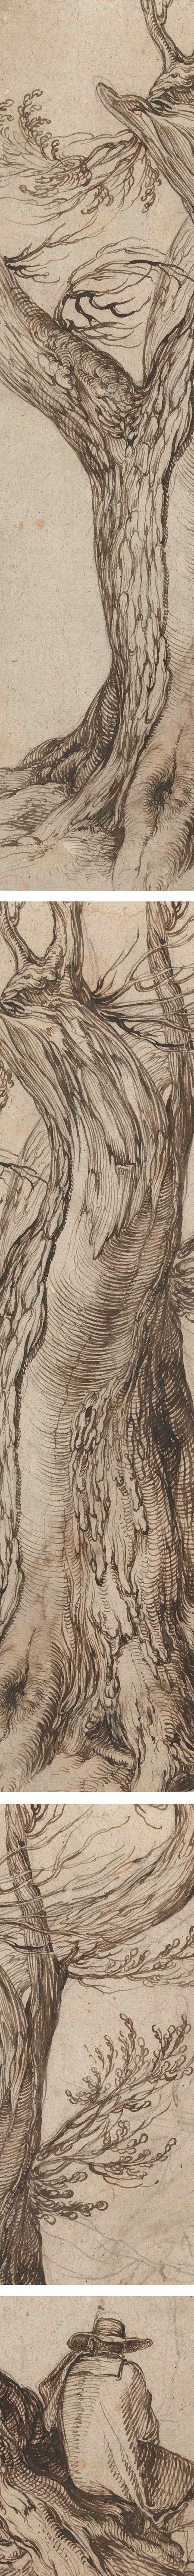 Chestnut Tree with some trees around it, Jacob de Gheyn, ink and chalk drawing (details)